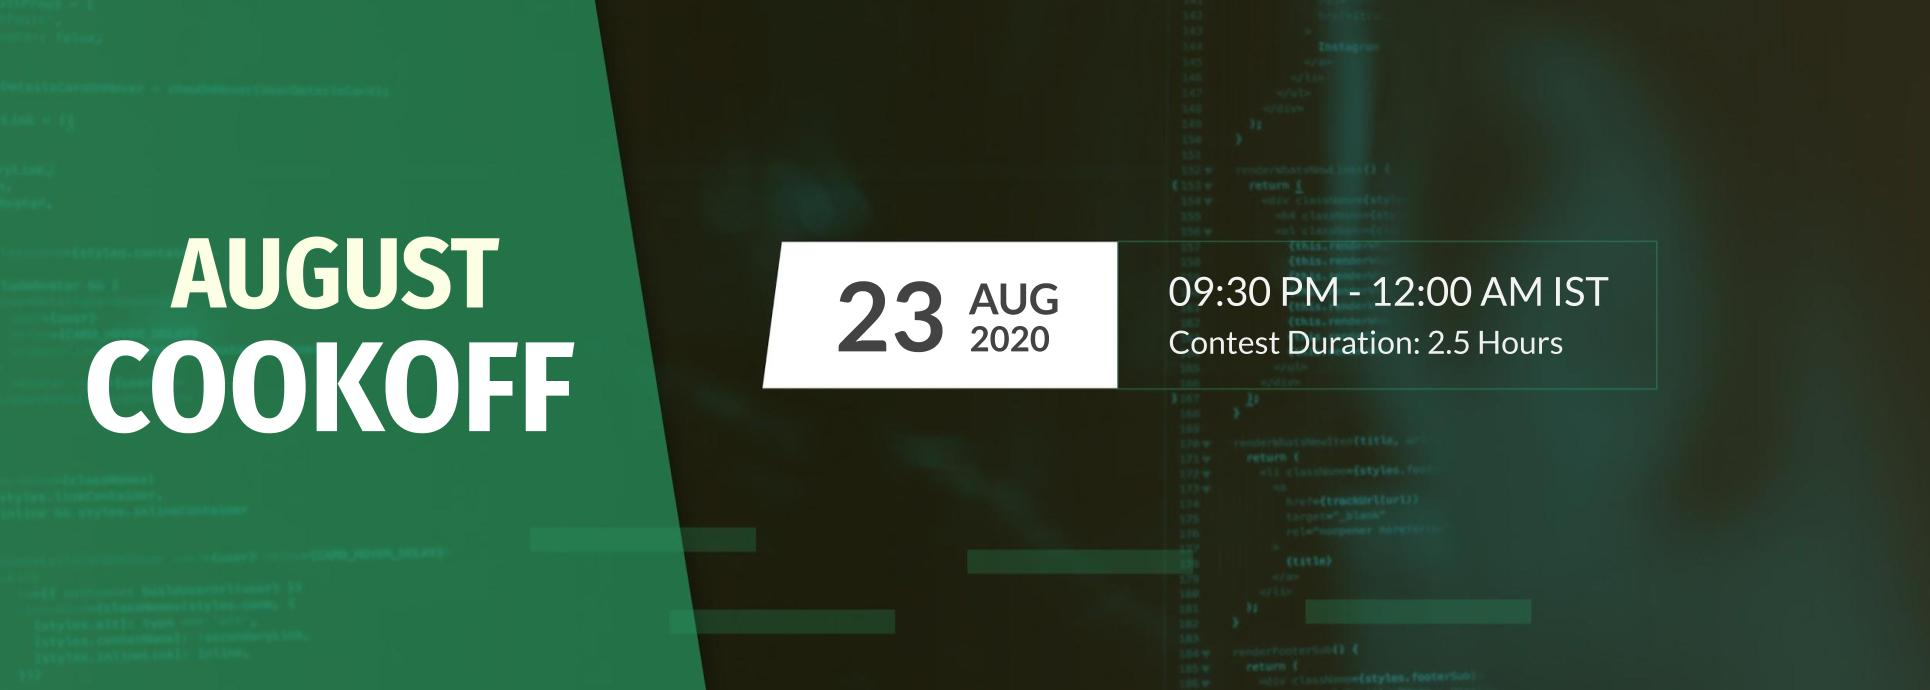 Programming Competition,Programming Contest,Online Computer Programming